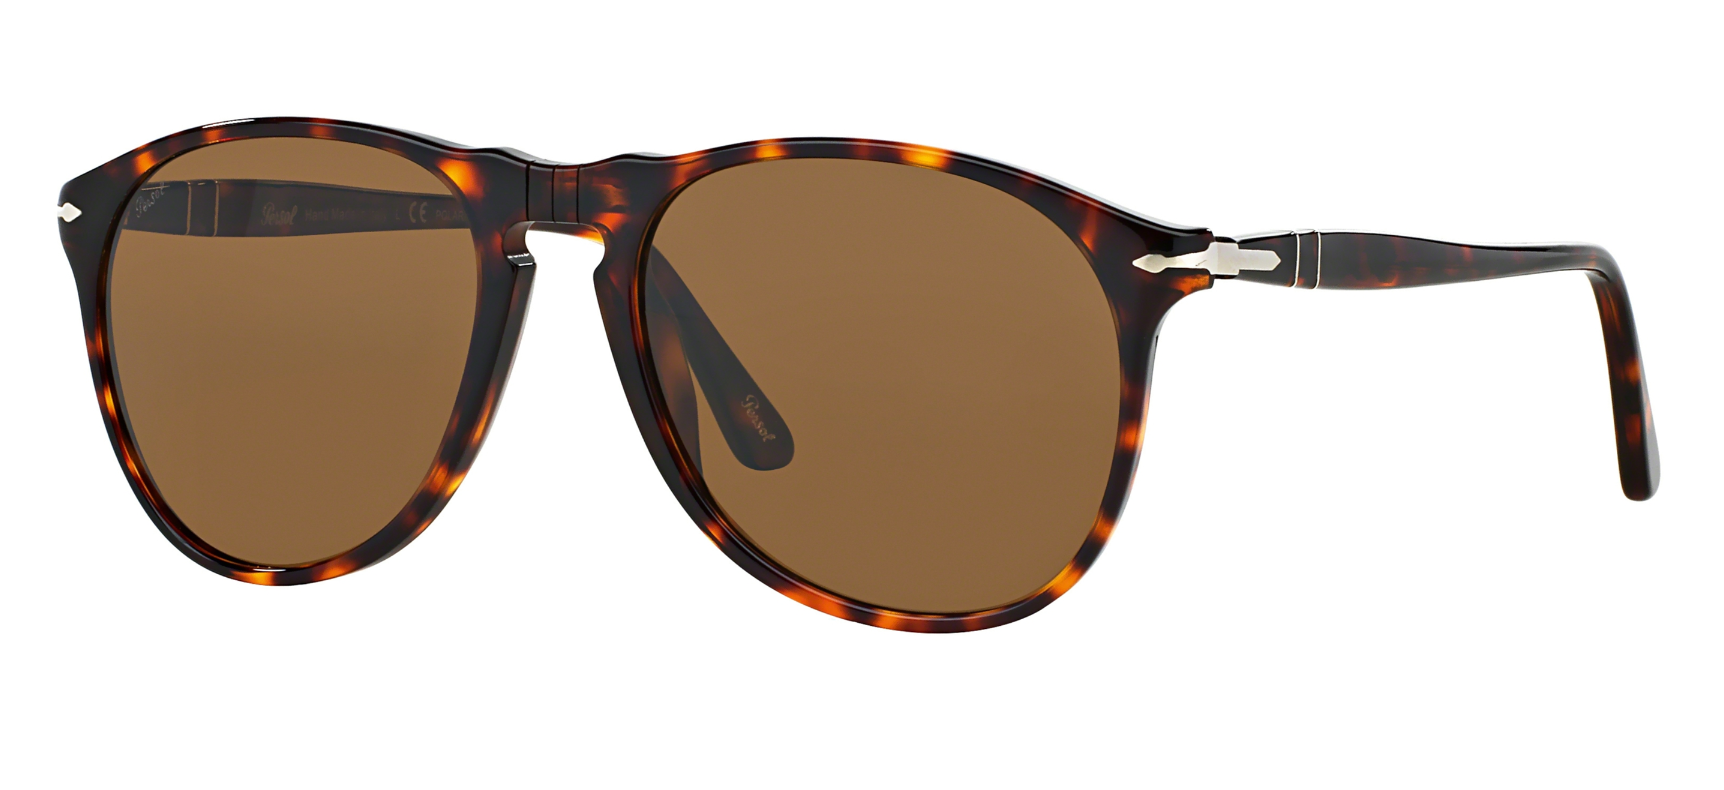 Persol - 9649S